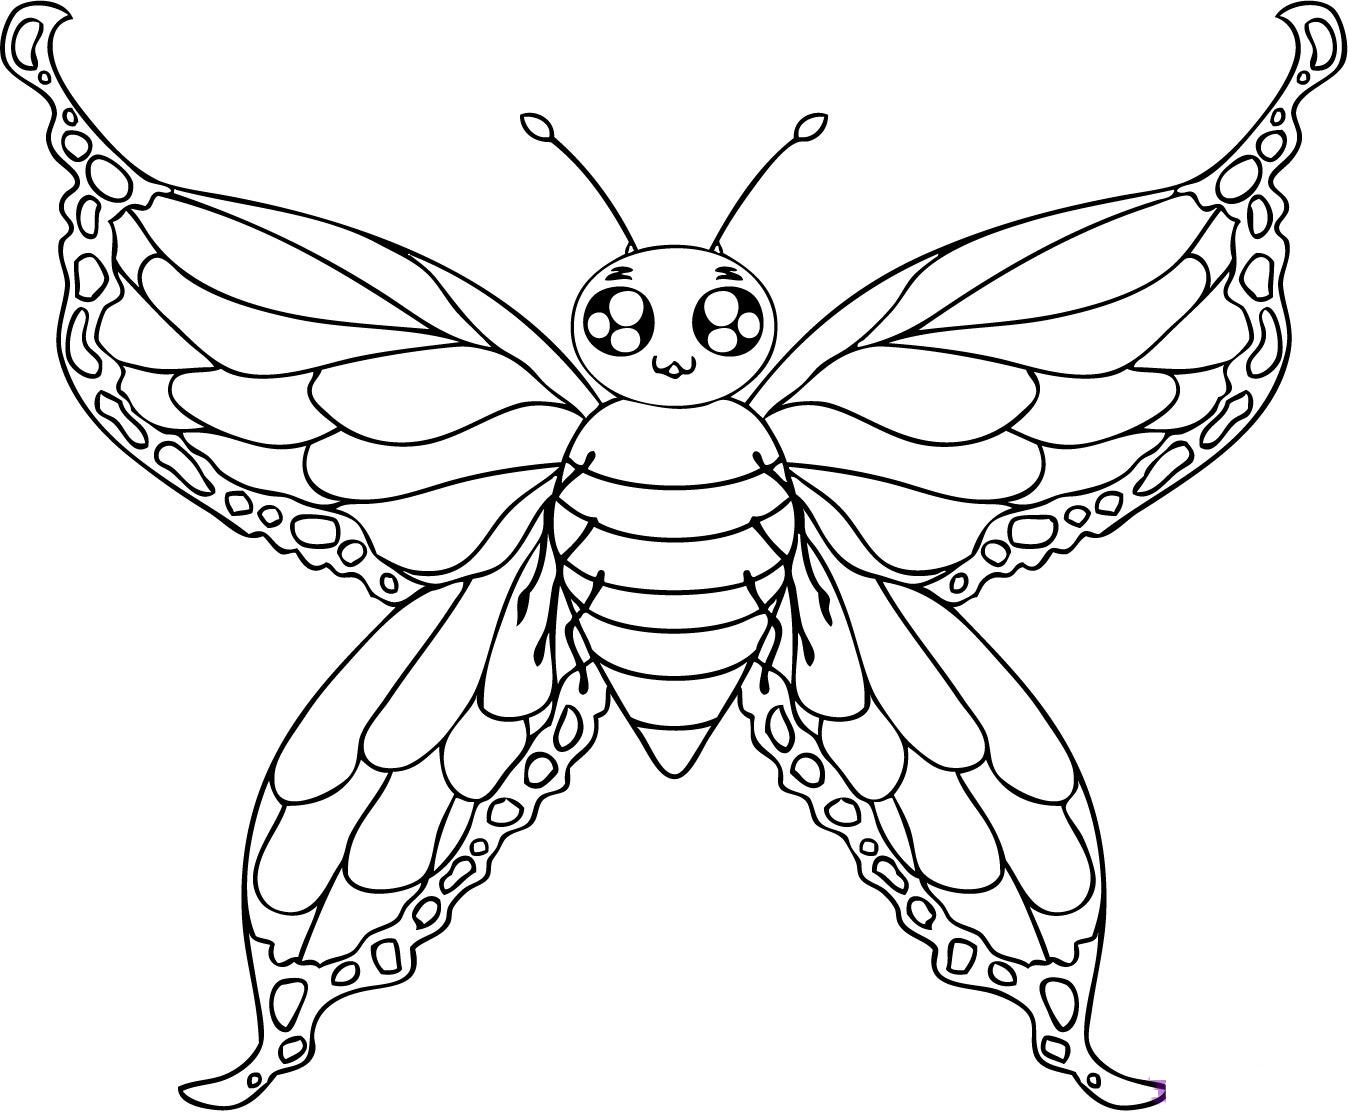 Butterfly cartoon image